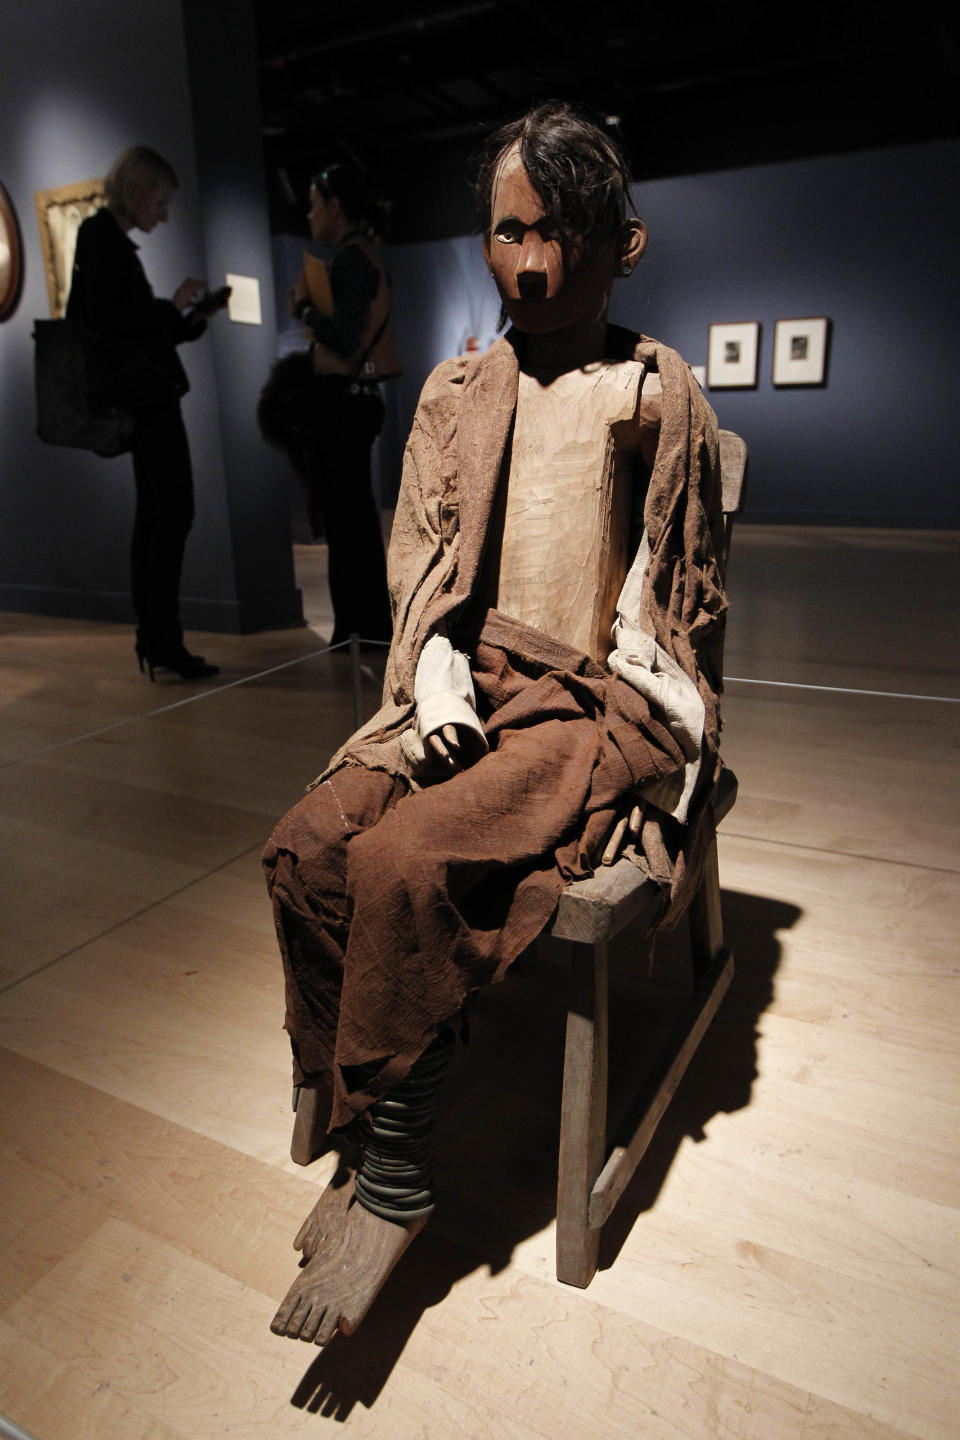 An Indonesian Tau-Tau memorial sculpture is seen on display at an exhibition 'Death: The Richard Harris Collection' at the Wellcome Collection gallery in London, Wednesday, Nov. 14, 2012. (AP Photo/Sang Tan)